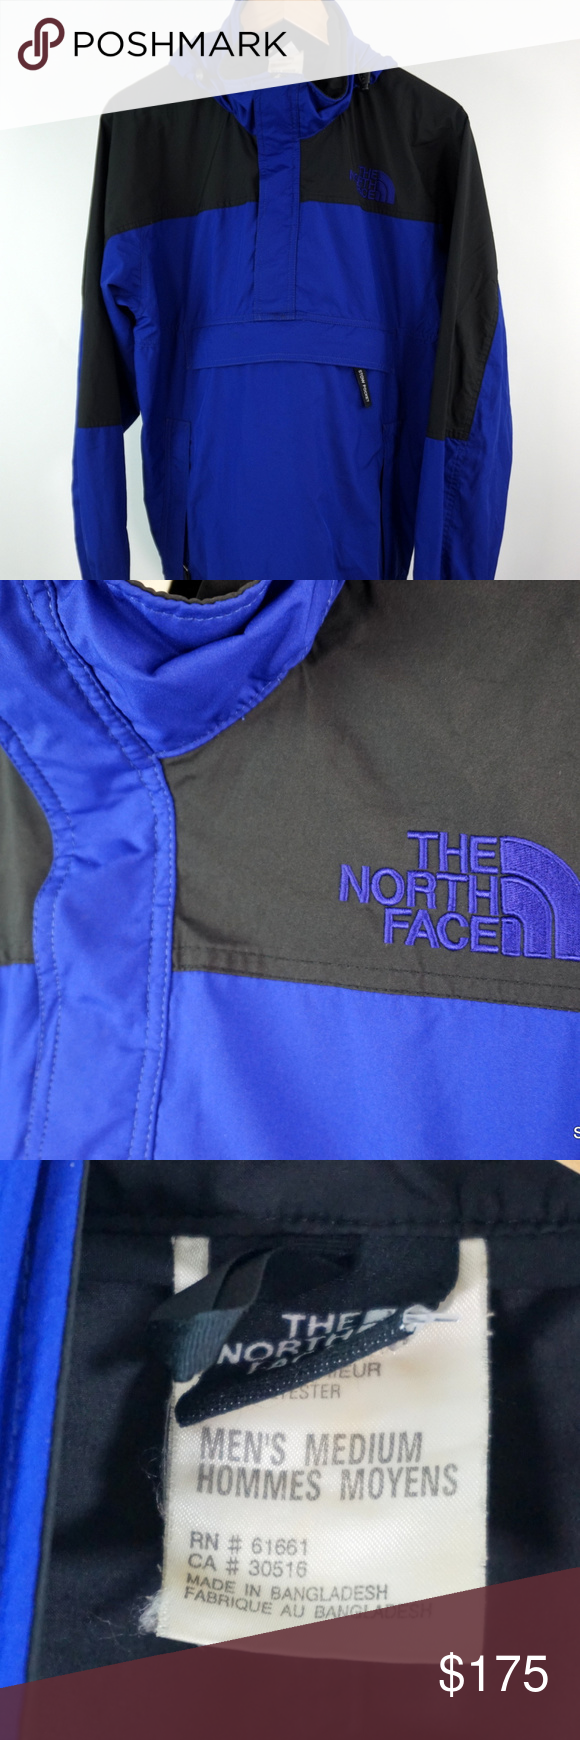 The North Face Mountain Guide Jacket Stow Pocket M North Face Jacket The North Face Black North Face [ 1740 x 580 Pixel ]